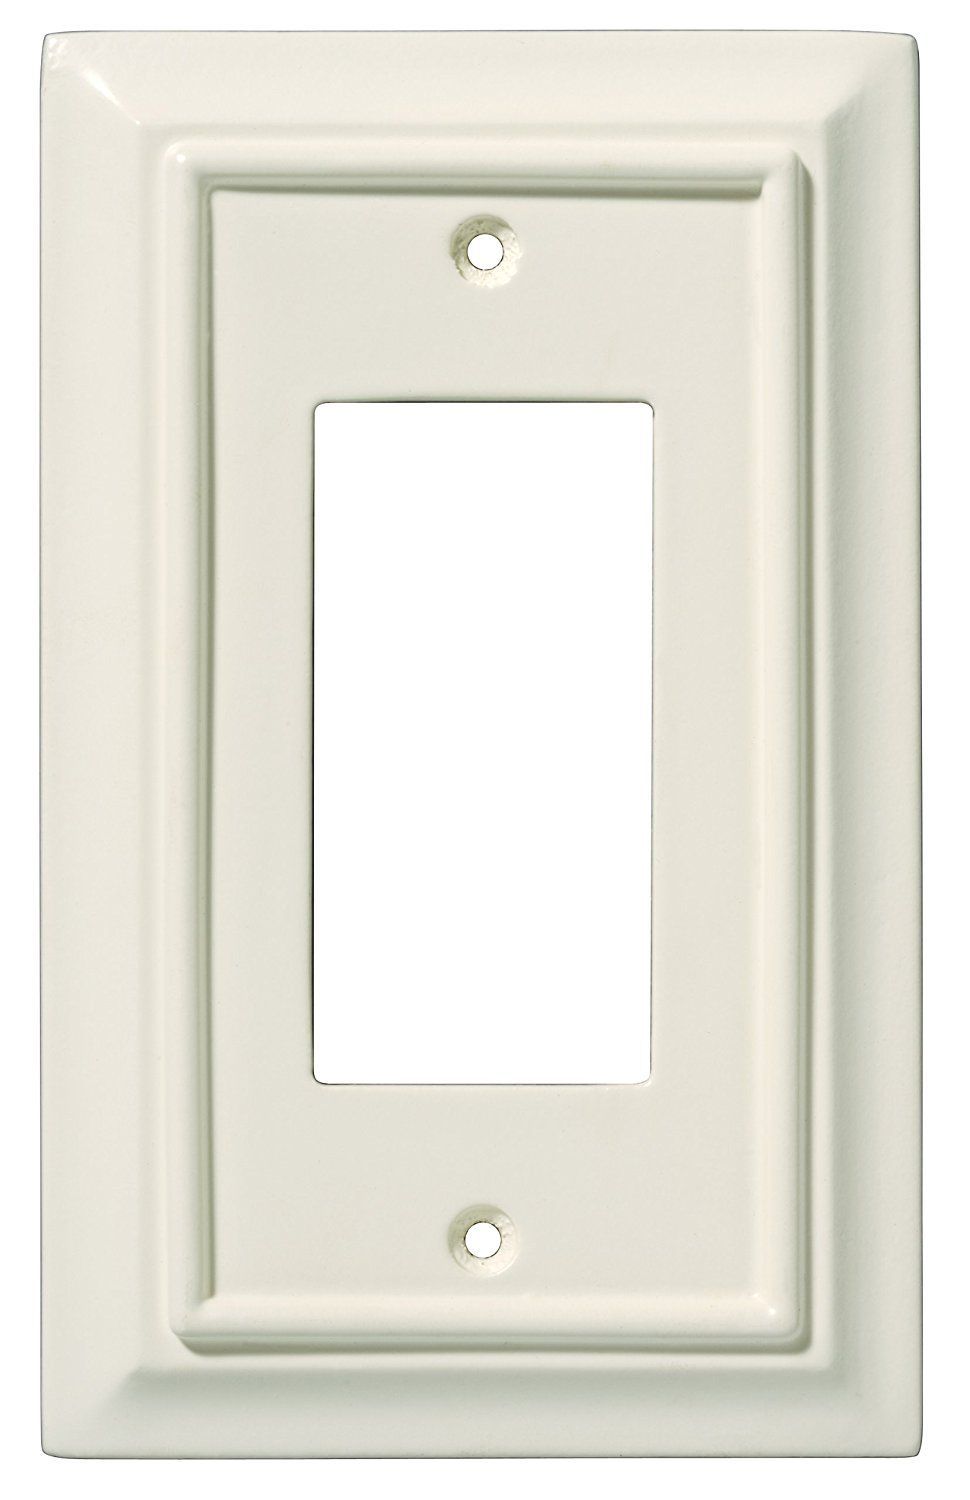 Brainerd 126332 Wood Architectural Single Decorator Wall Plate